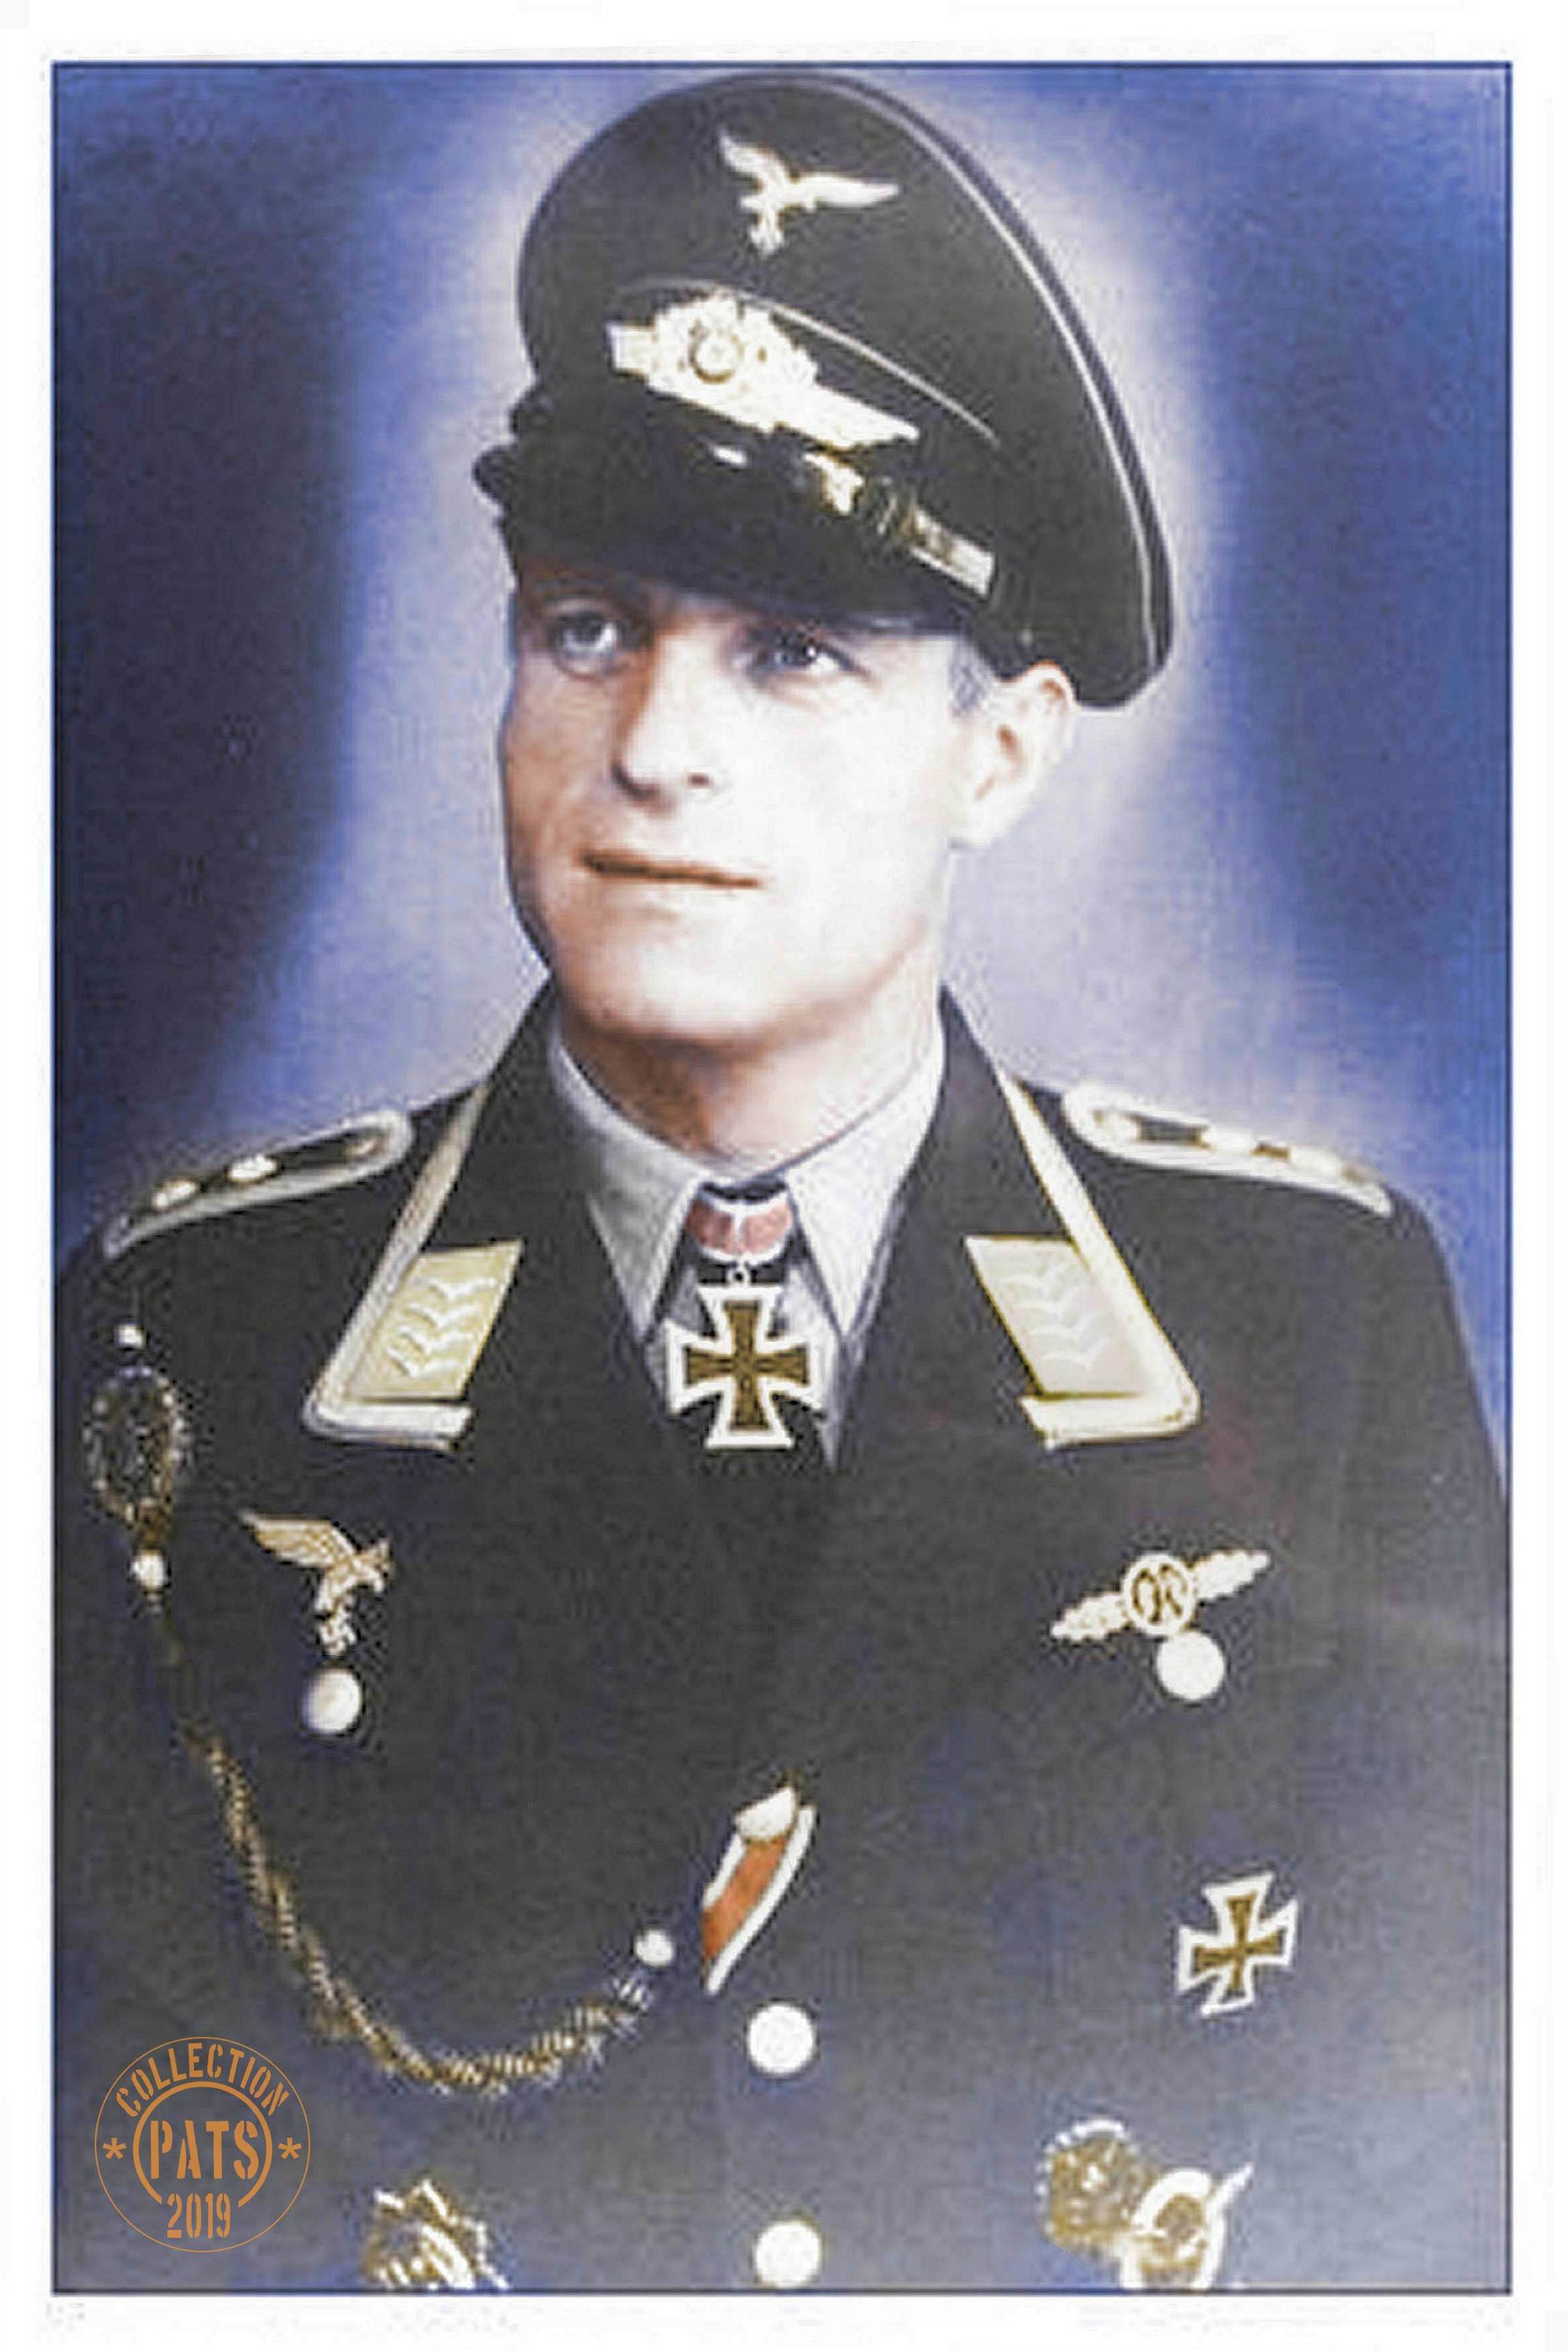 Oberleutnant Heinz Kurt Albert Klöpper - photo November 1942